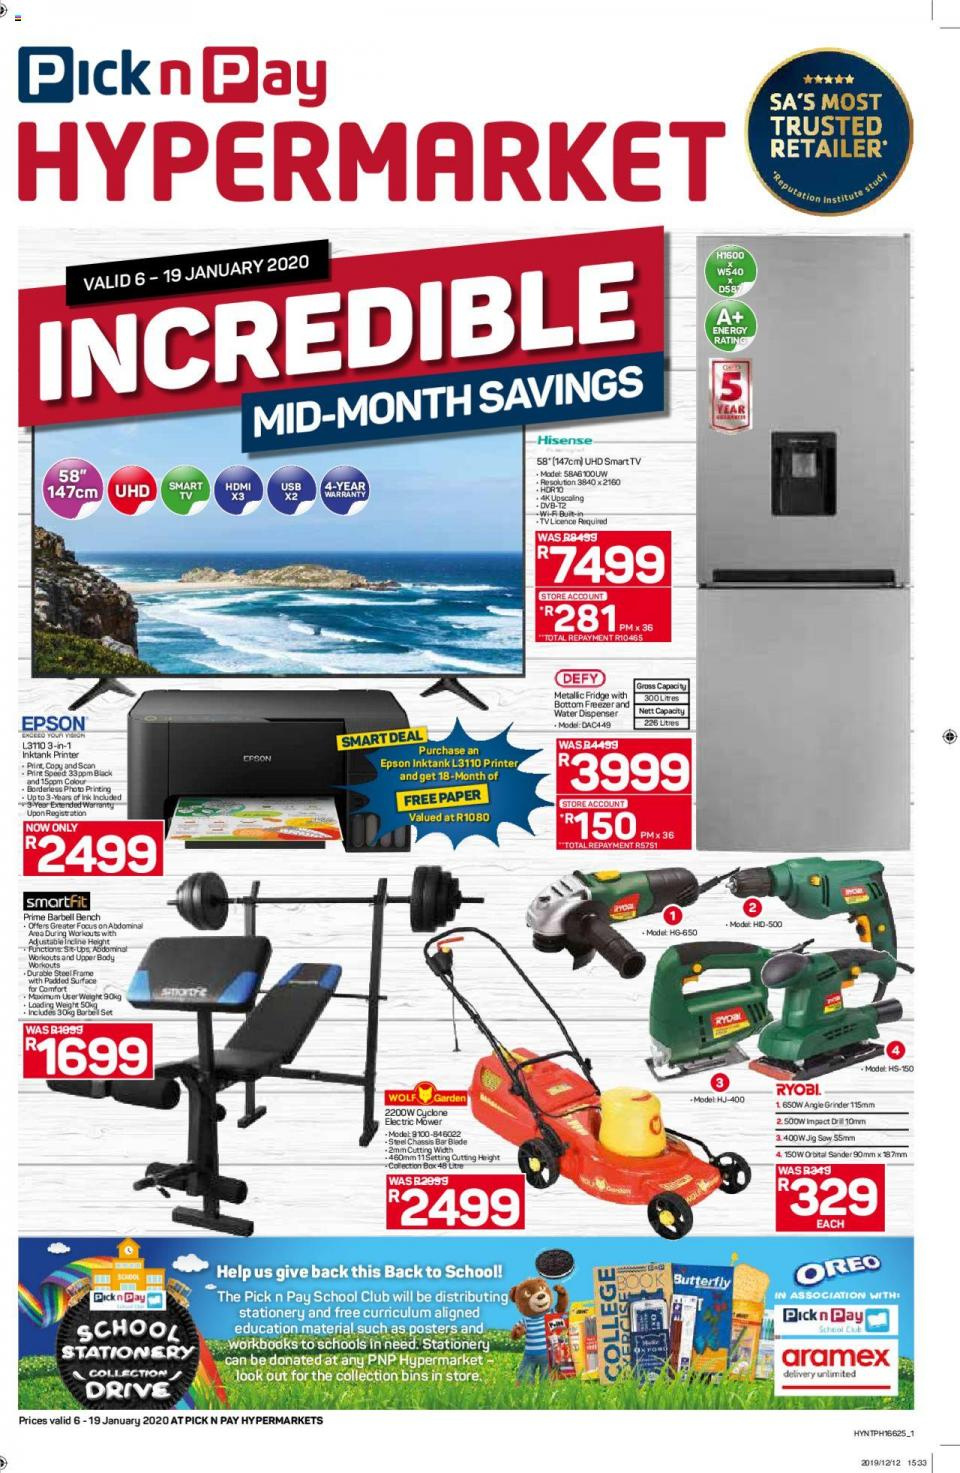 pick n pay specials mid month savings hypermarket 7 january 2020